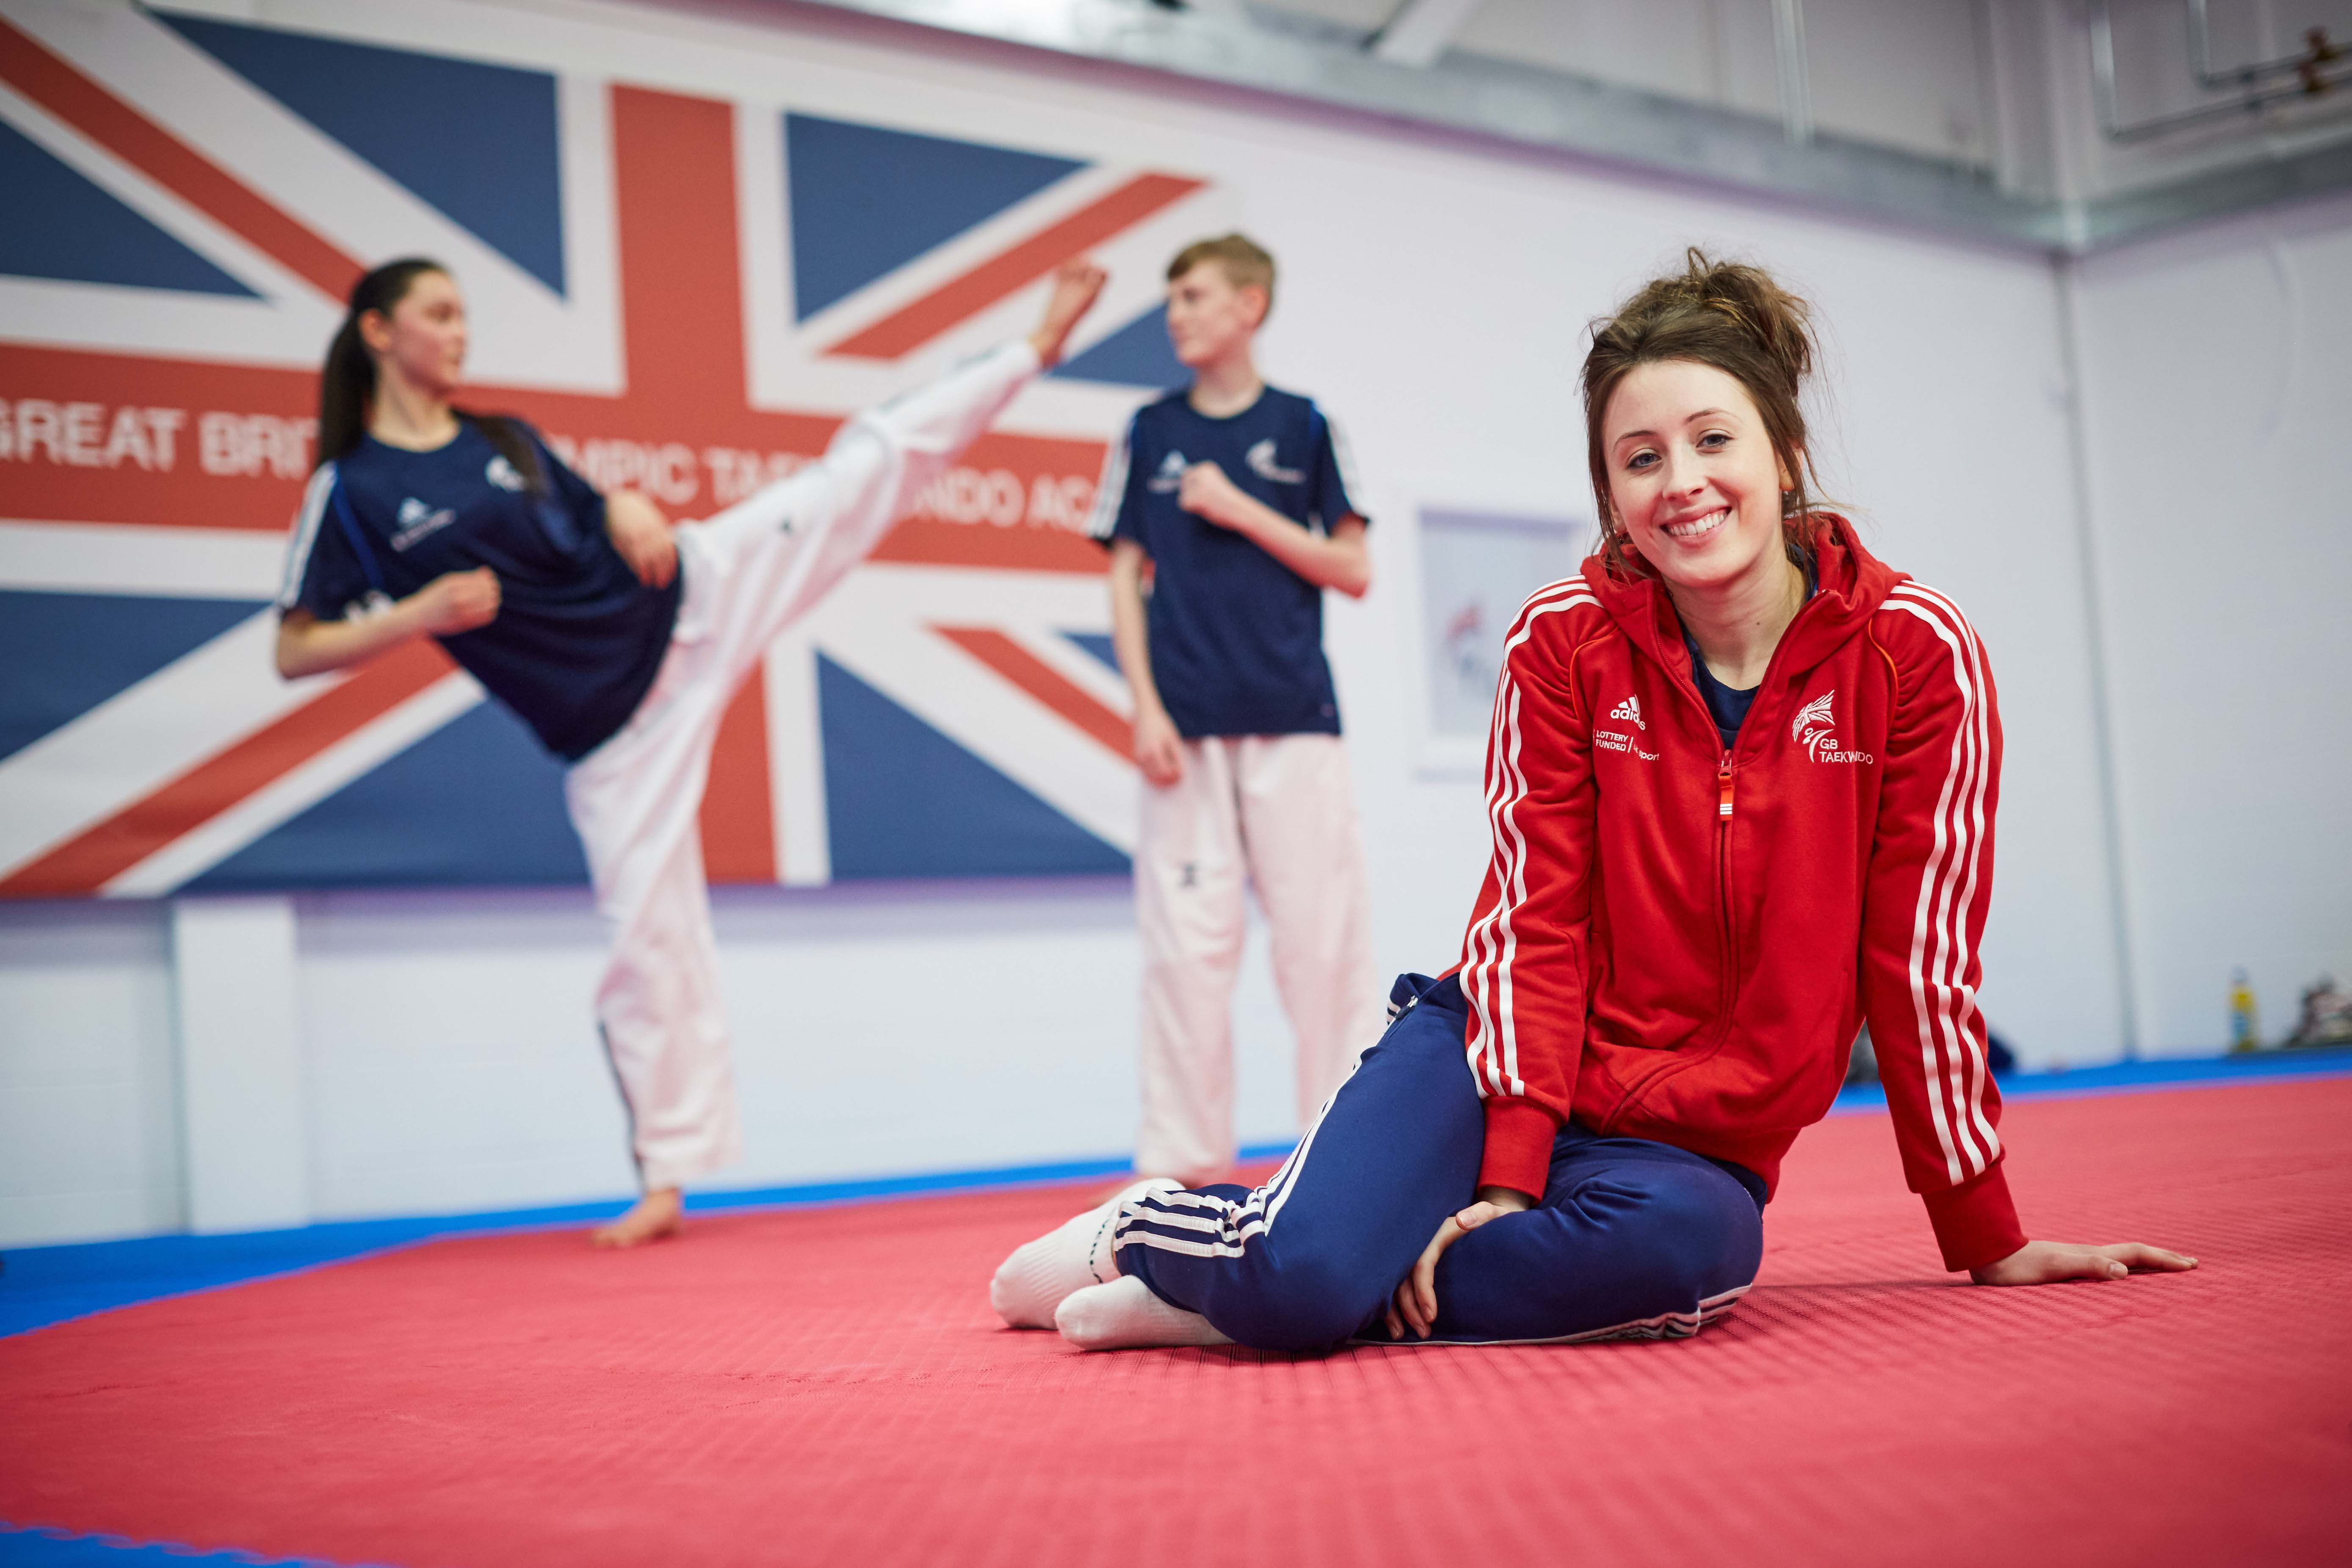 National Taekwondo Centre in Manchester official opening of the new Centre after a £3m transformation. Pictured Jade Jones with Maria Asef 14 from Manchester and Mason Yarrow15 from Doncaster (behind)